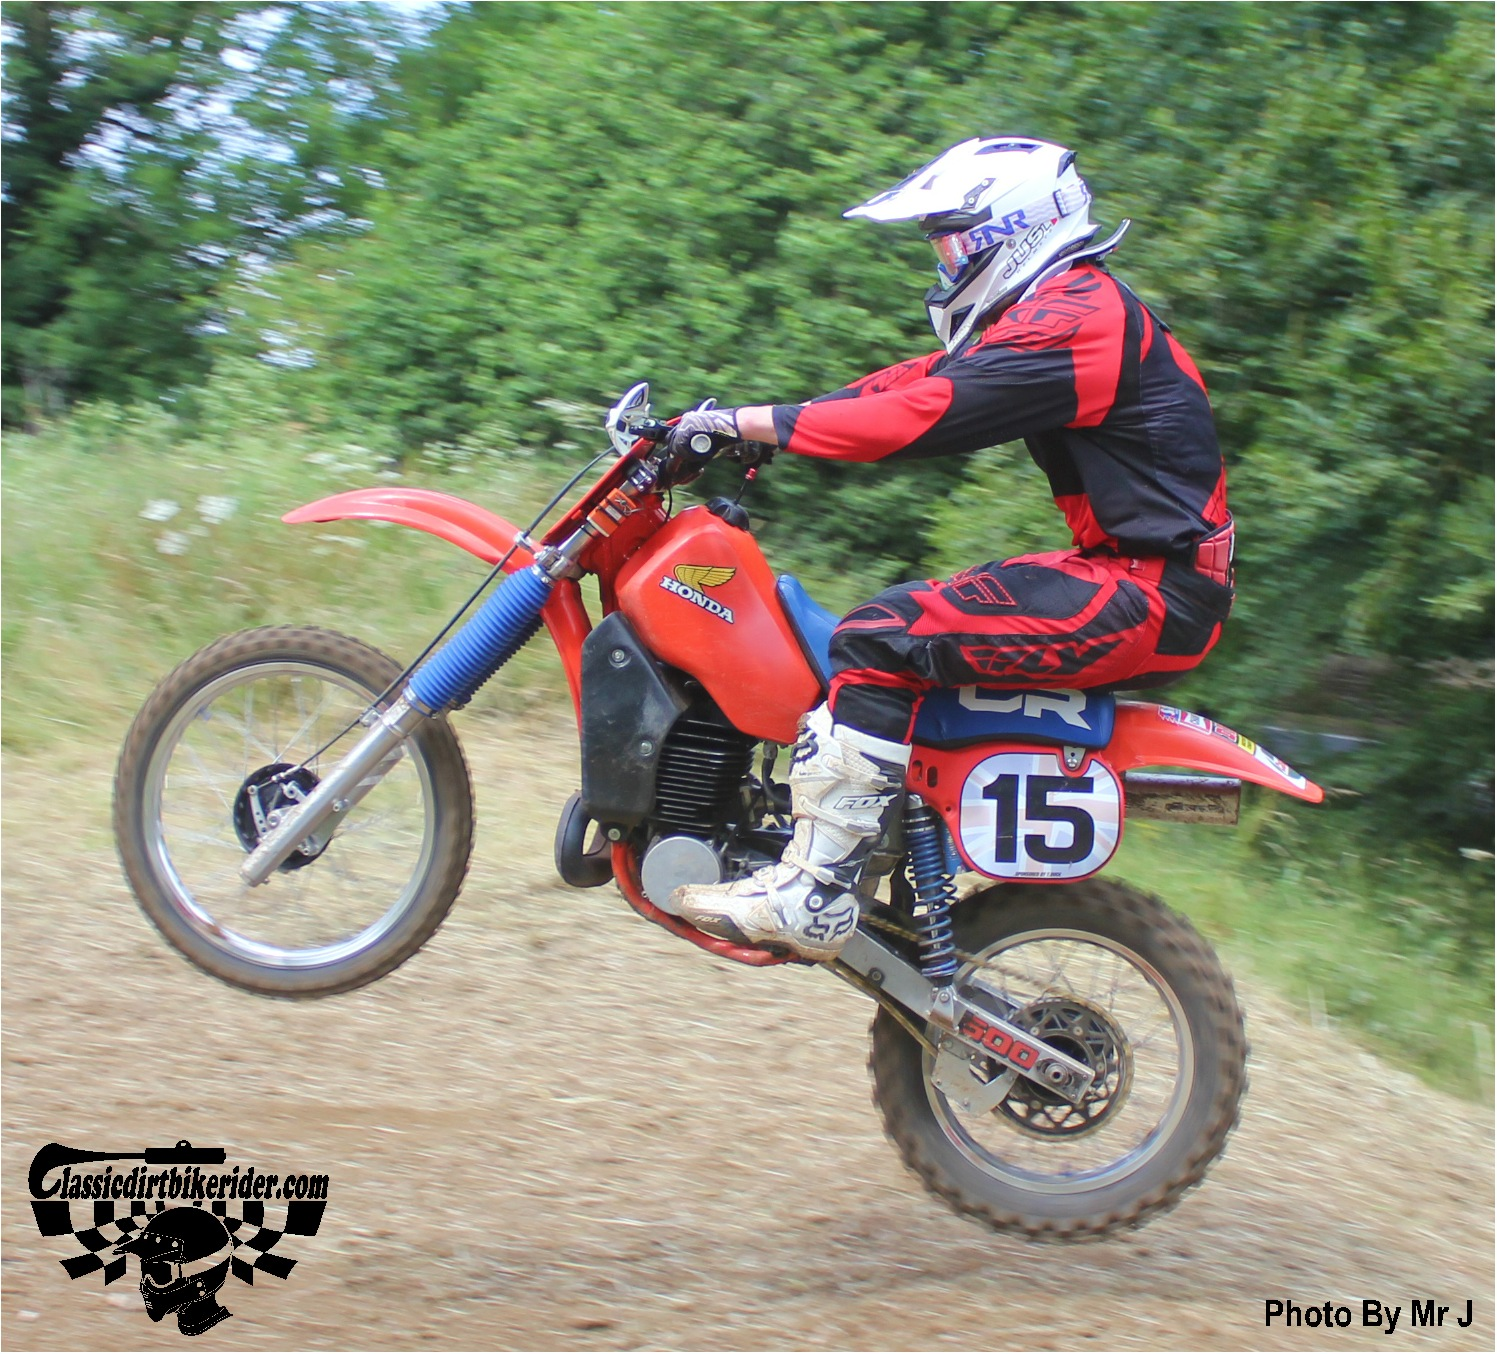 king of the castle 2015 photos Farleigh Castle twinshock motocross classicdirtbikerider.com 53